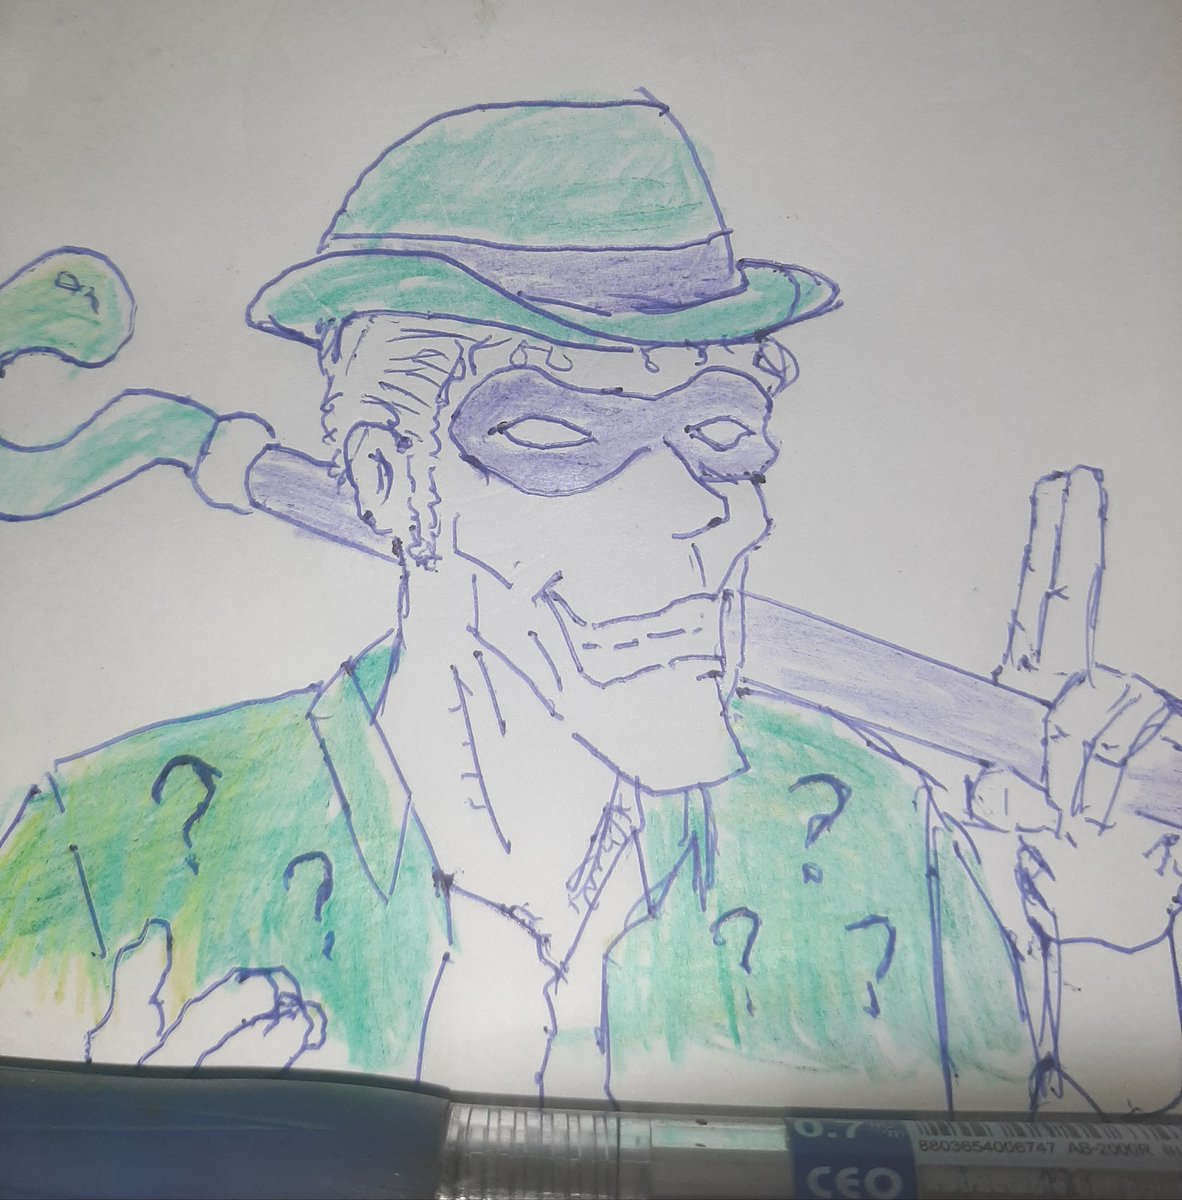 The Riddler? #sketchdaily 36/365